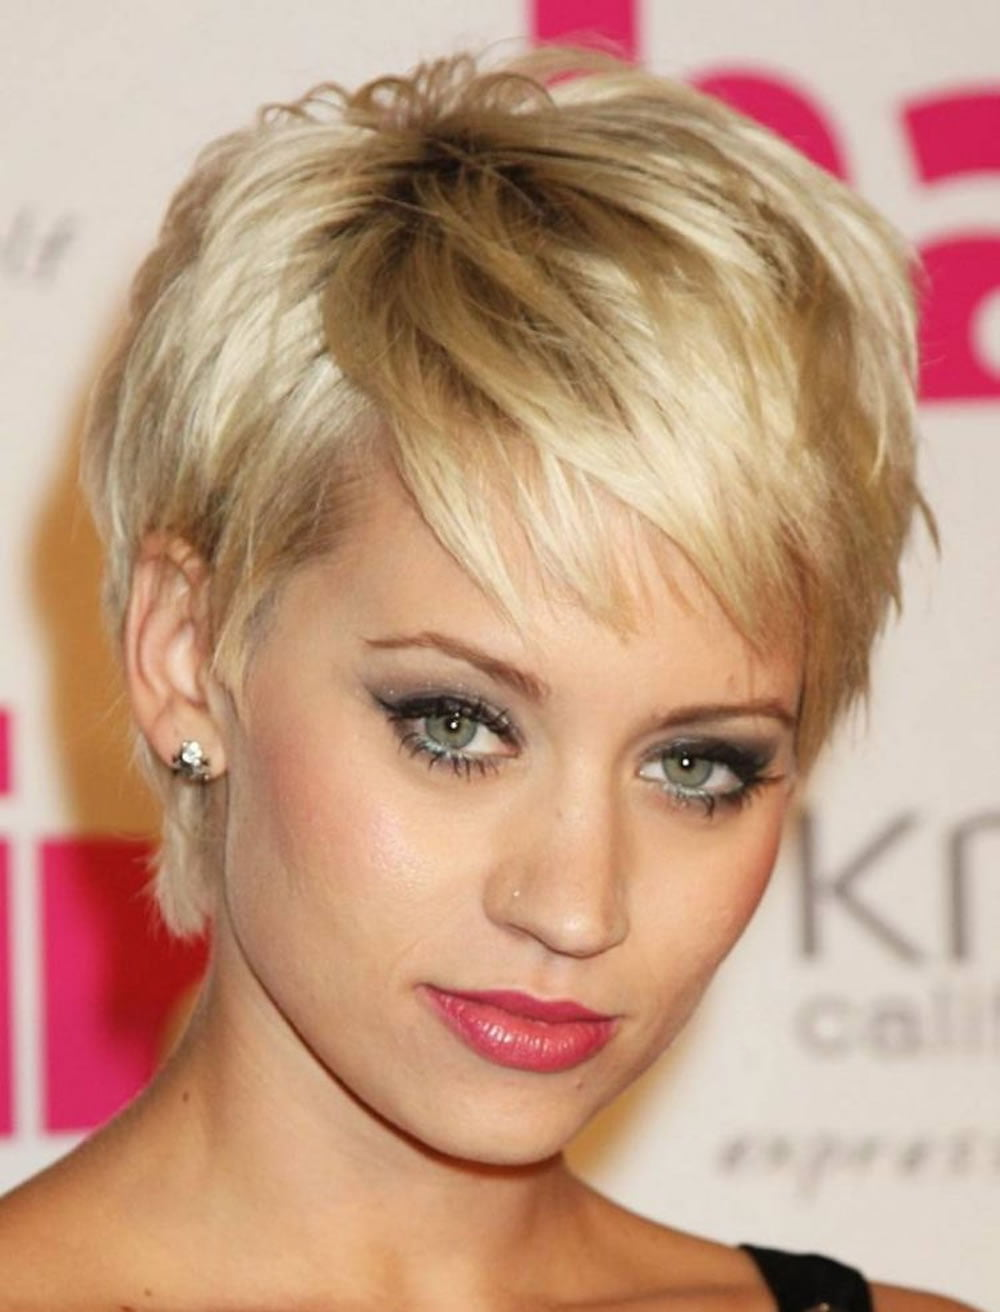 Pixie hairstyles for Women